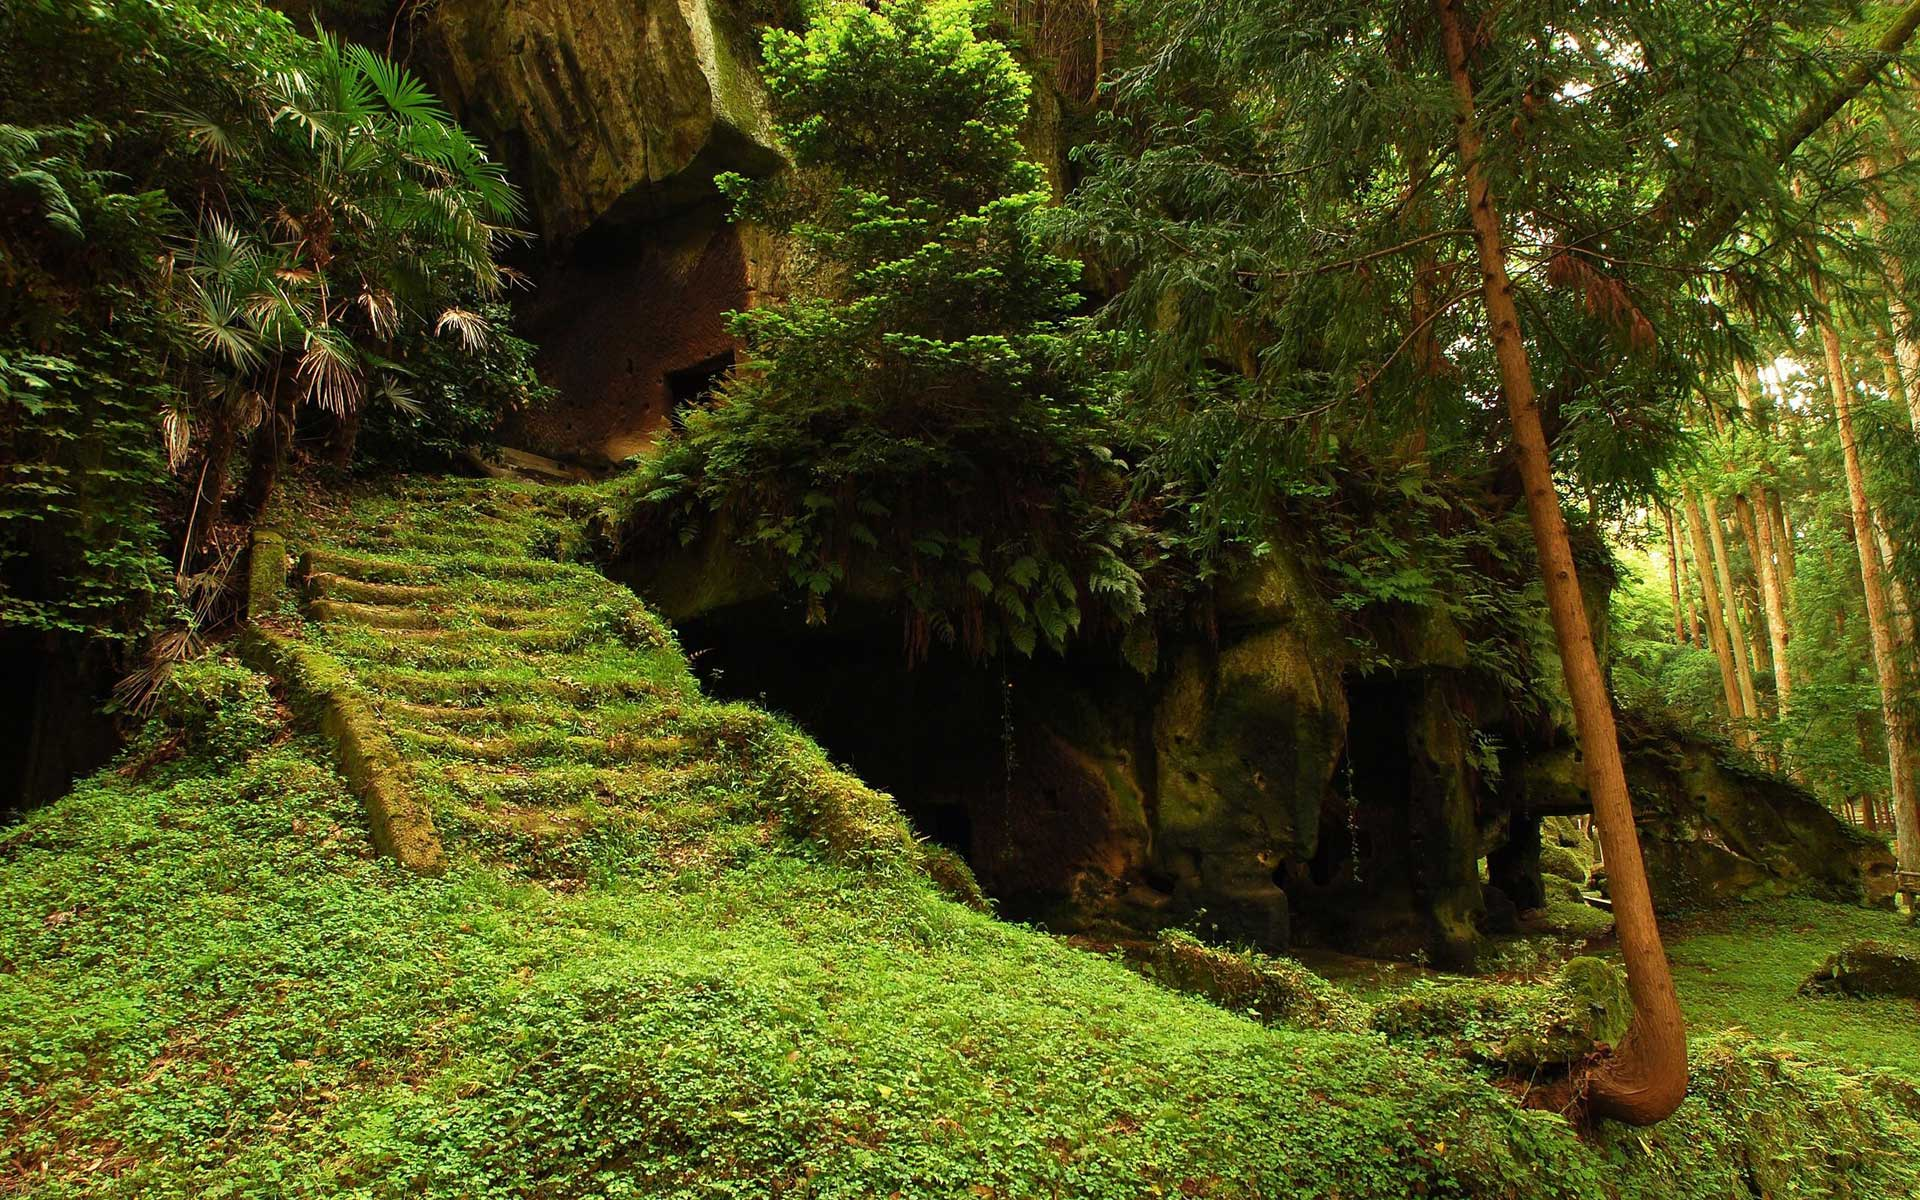 Stairs Moss Forest Wallpapers